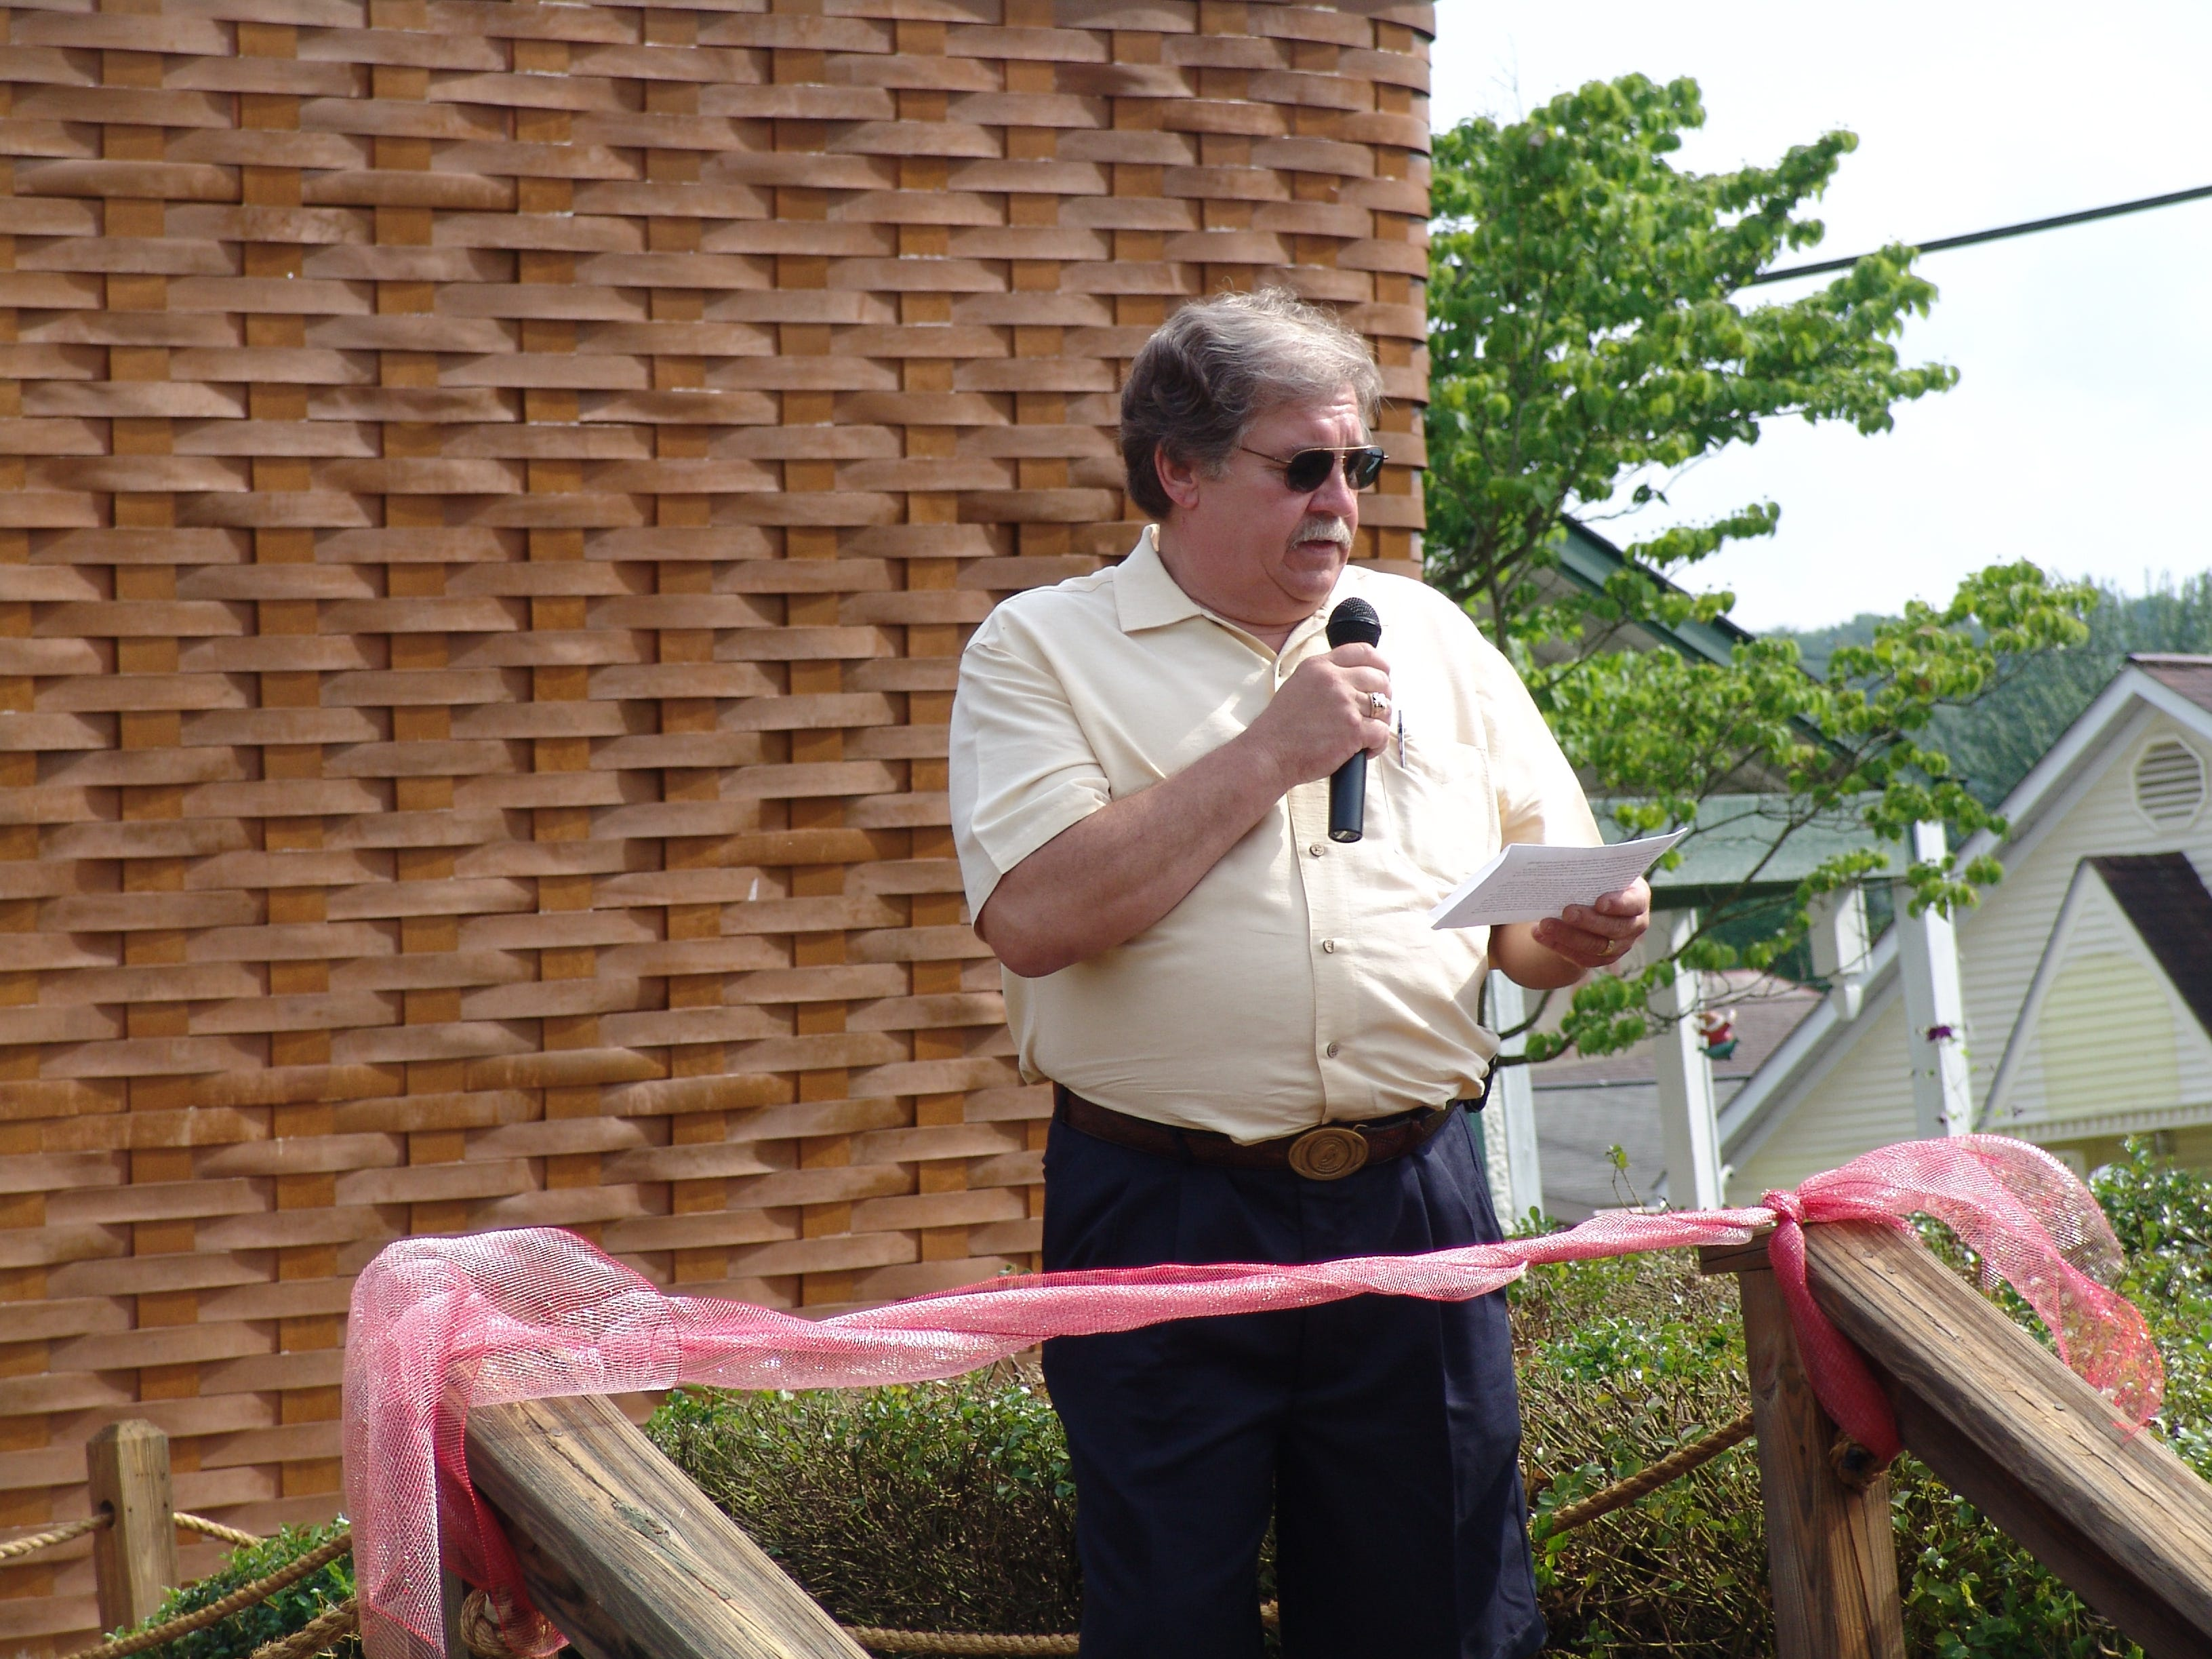 The Longaberger Company, Friends of the Dresden Parks, Inc, and the Village of Dresden held a rededication of the world's largest basket located on Main St. in Dresden on Sunday evening. The band Markham played following the ribbon cutting ceremony. The rededication followed restoration of the basket and coincides with the 40th anniversary of the Longaberger Company.